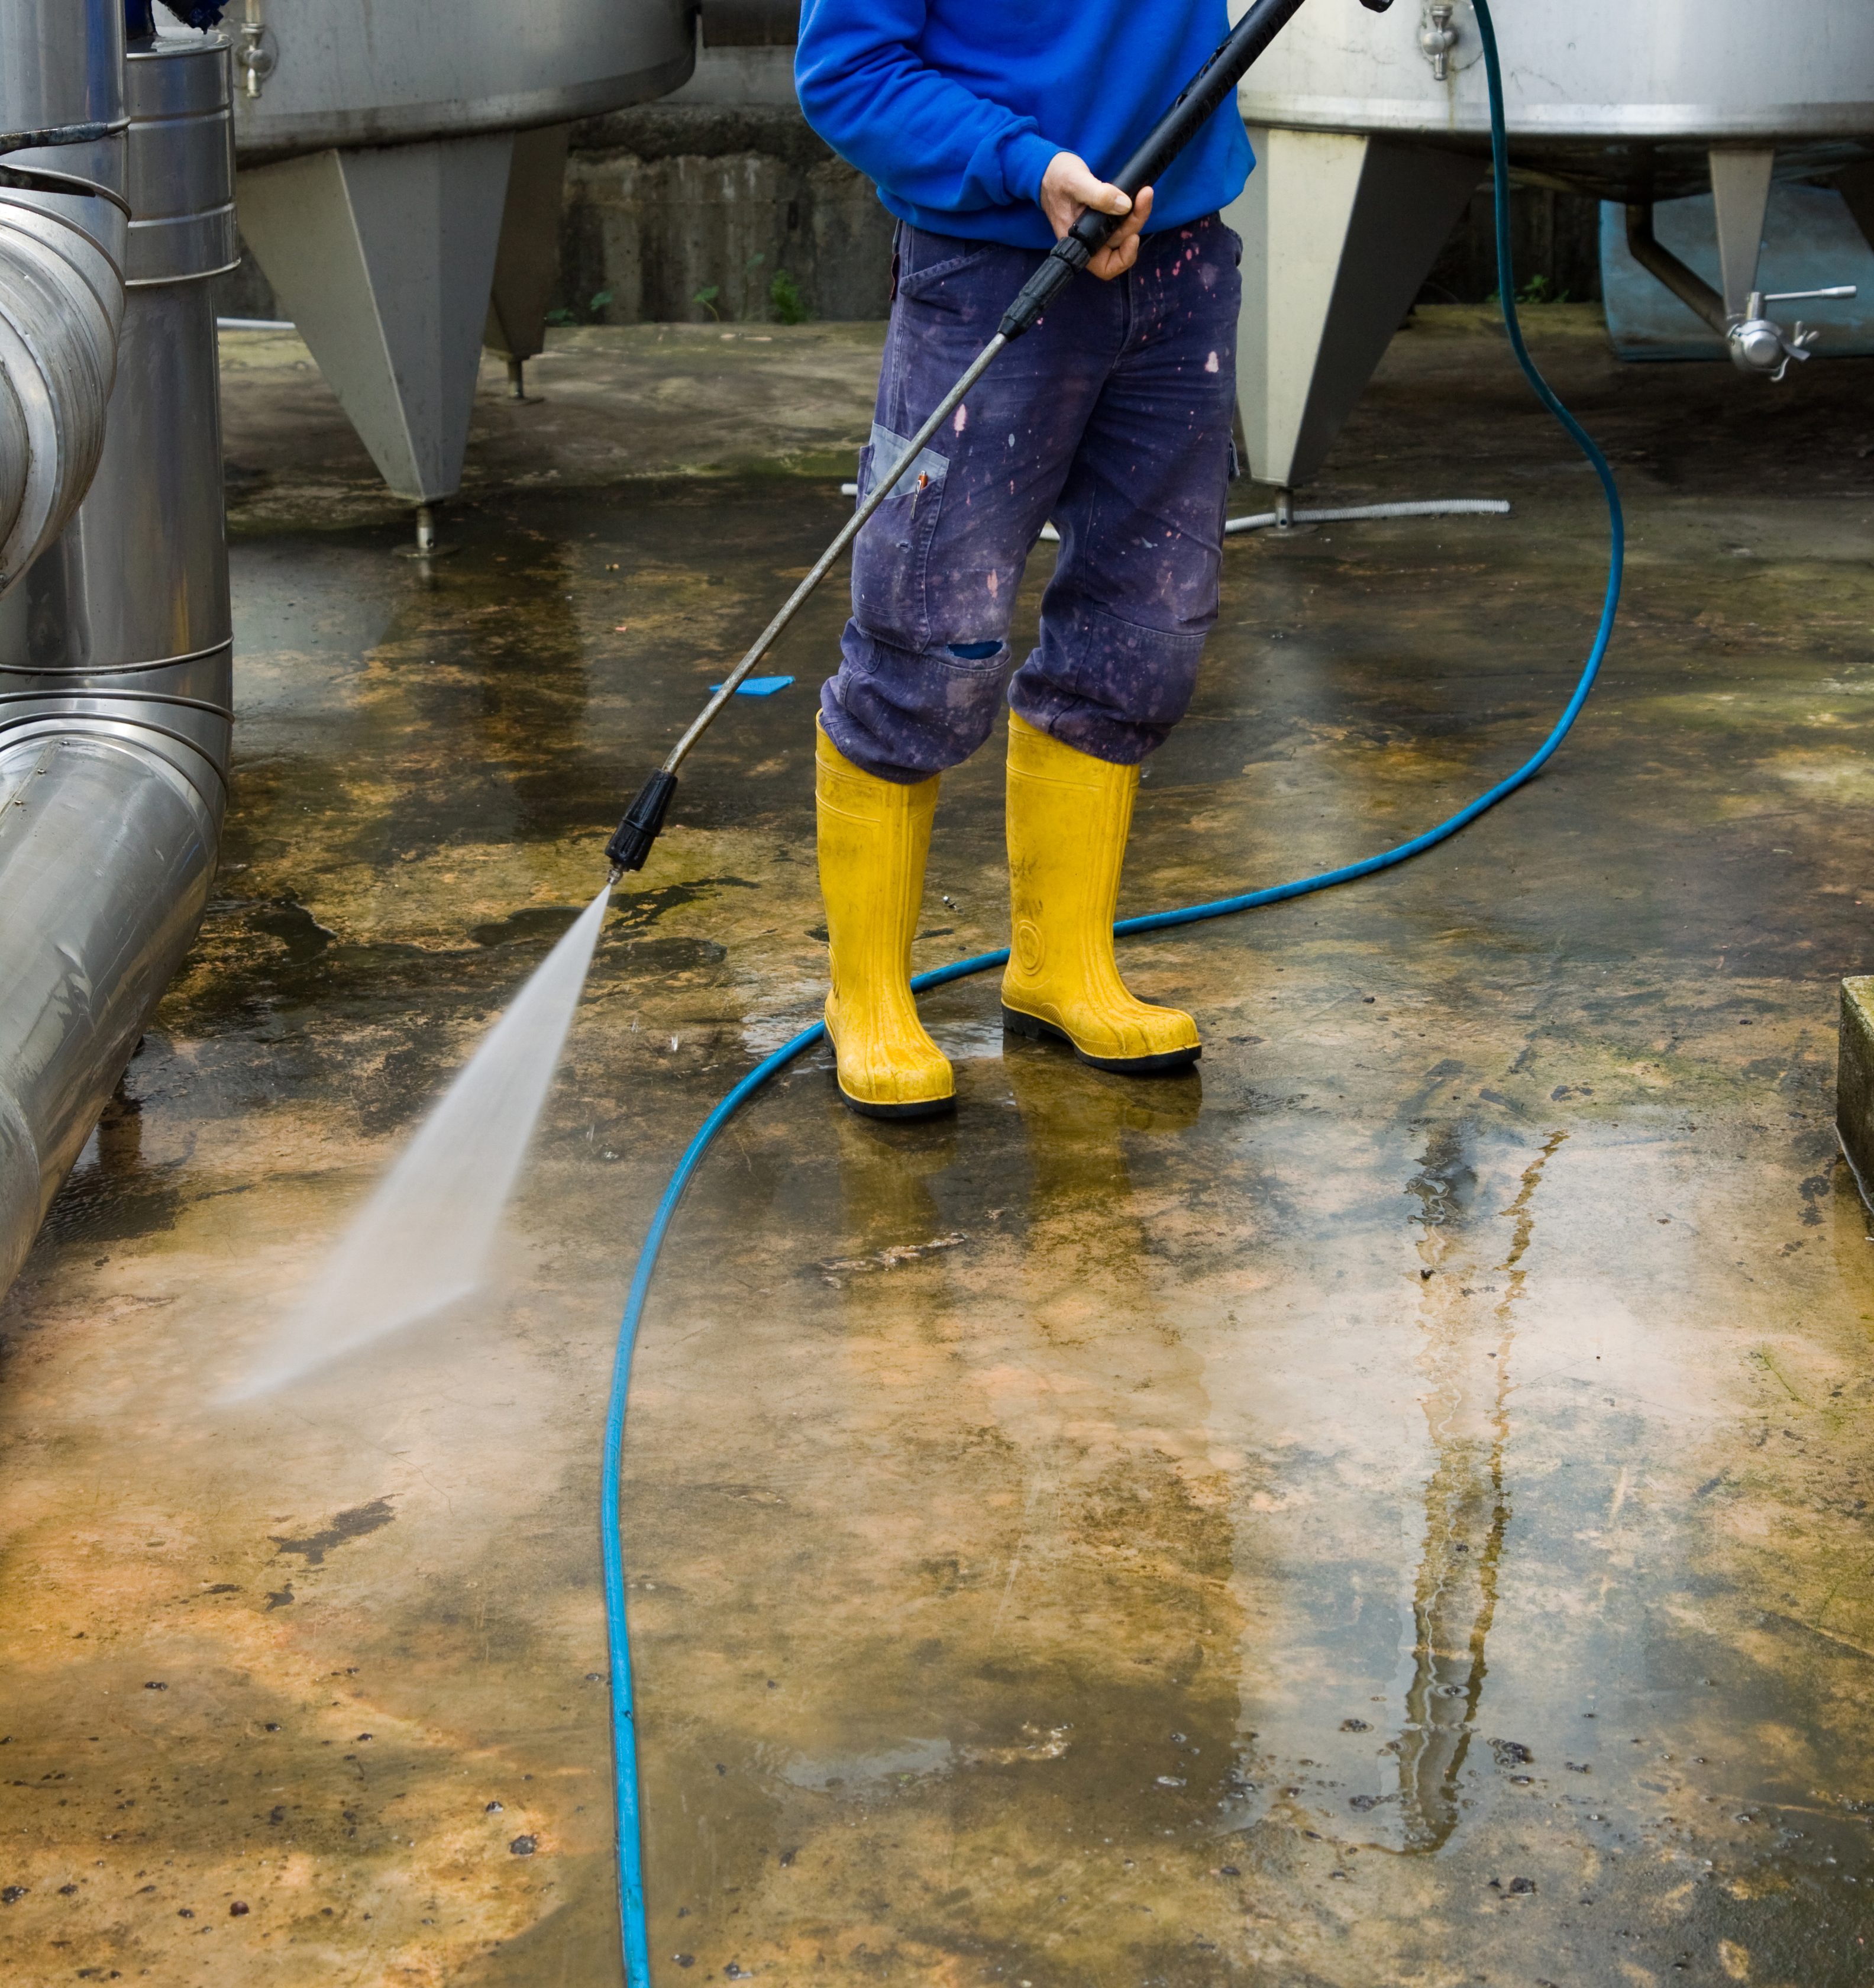 Dry ice blasting vs pressure washing